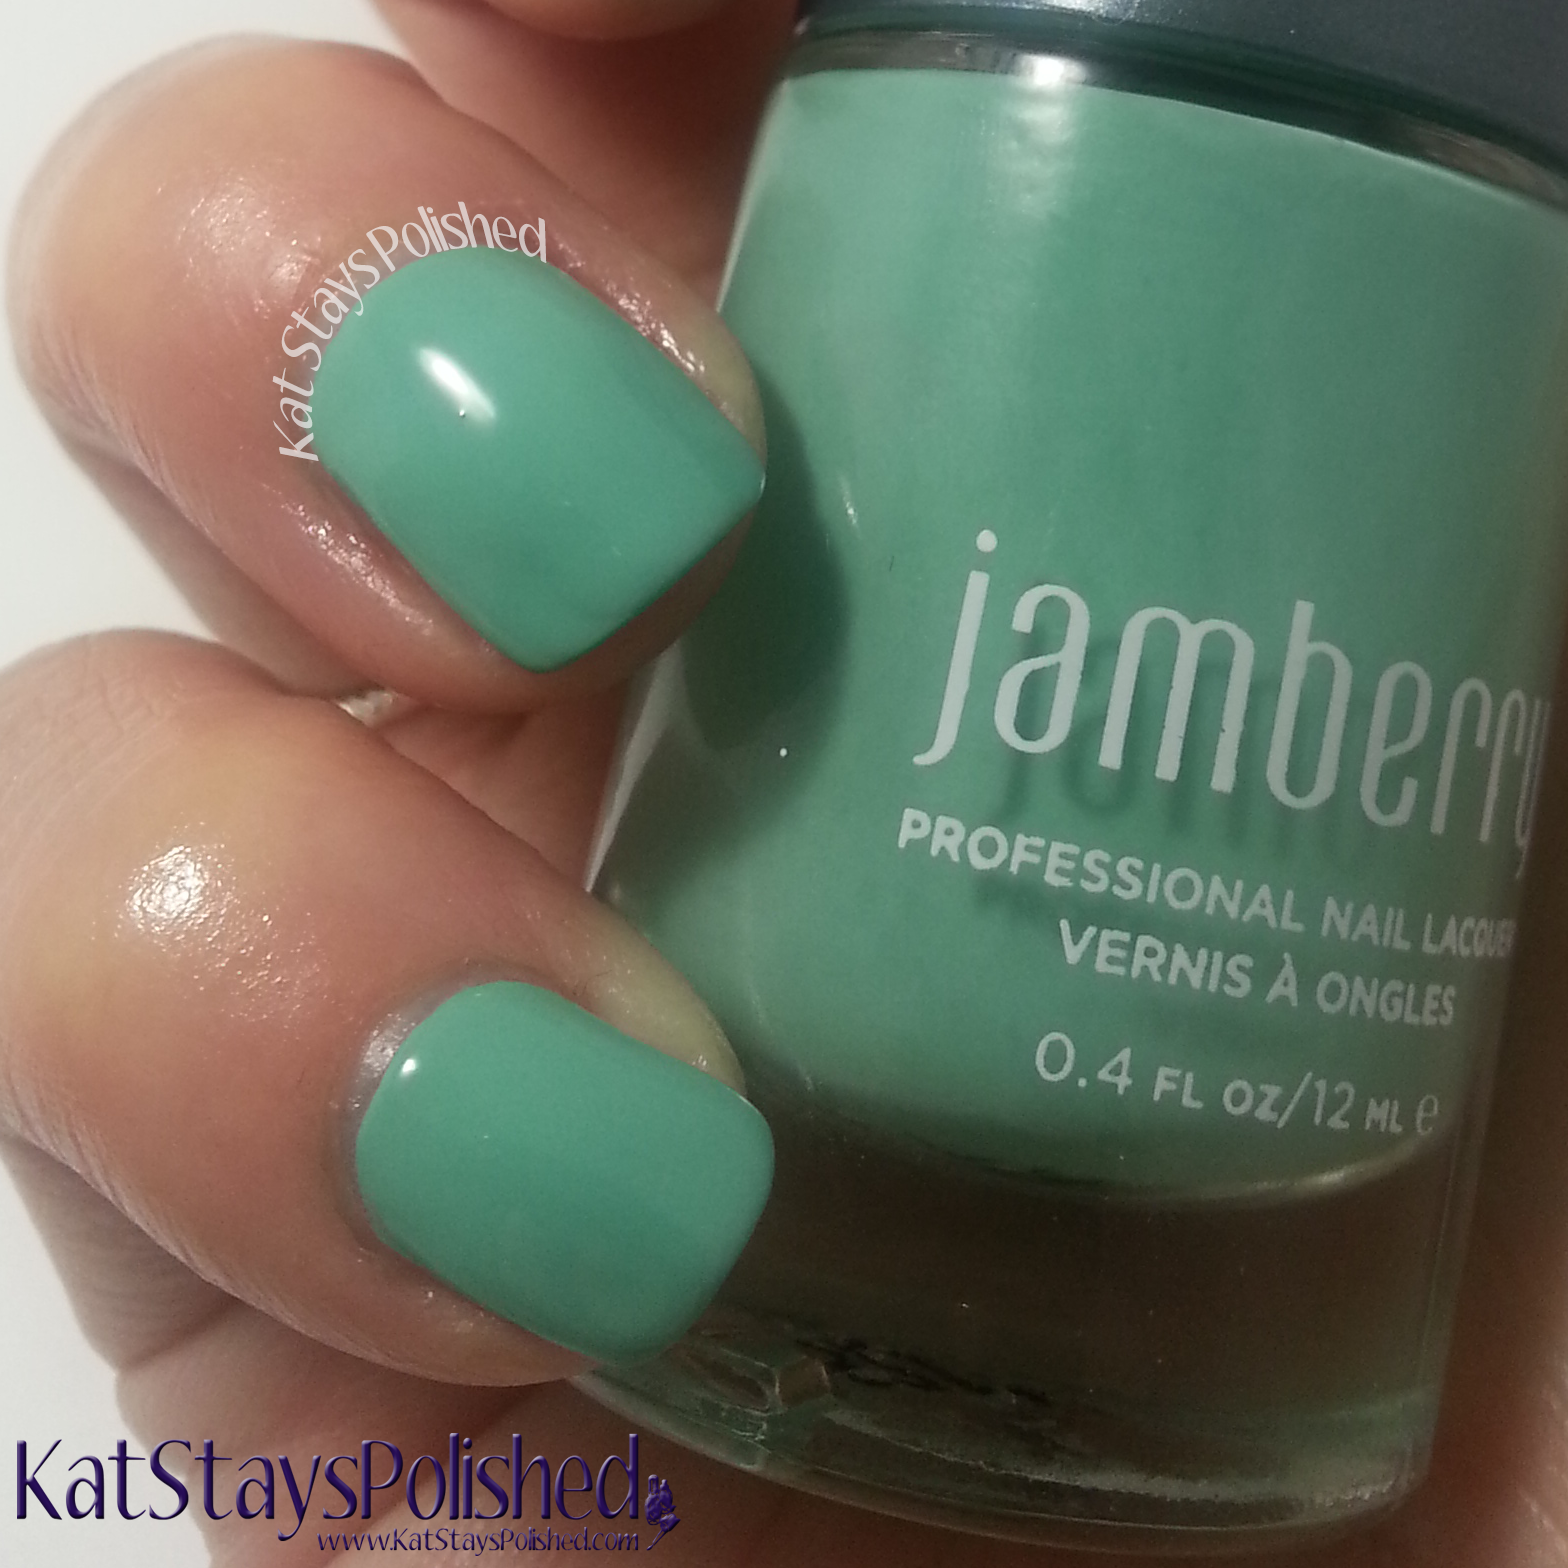 Jamberry Nail Lacquer - Hint of Mint | Kat Stays Polished